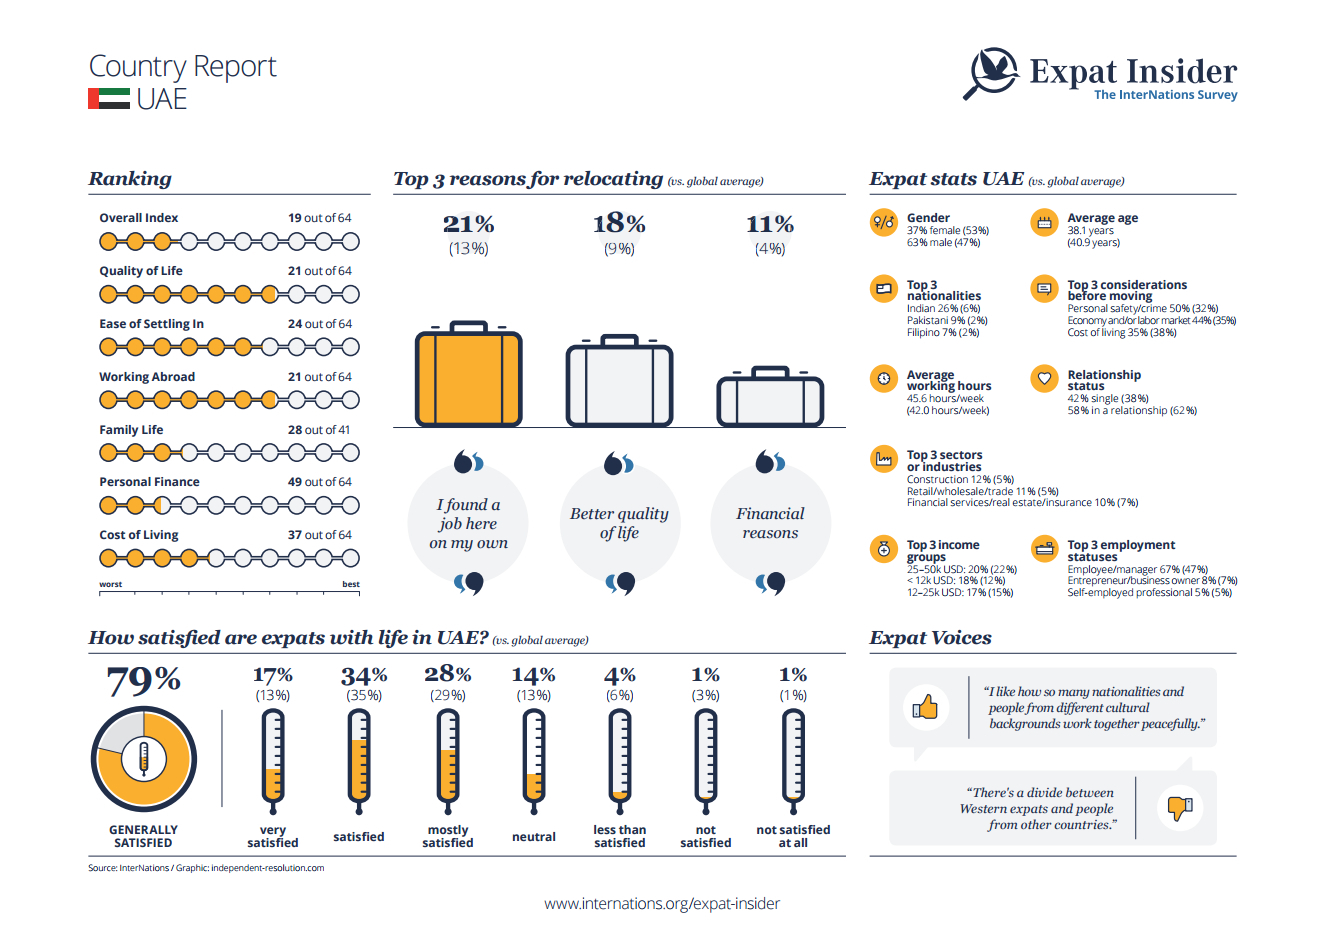 Expat statistics for the UAE - infographic